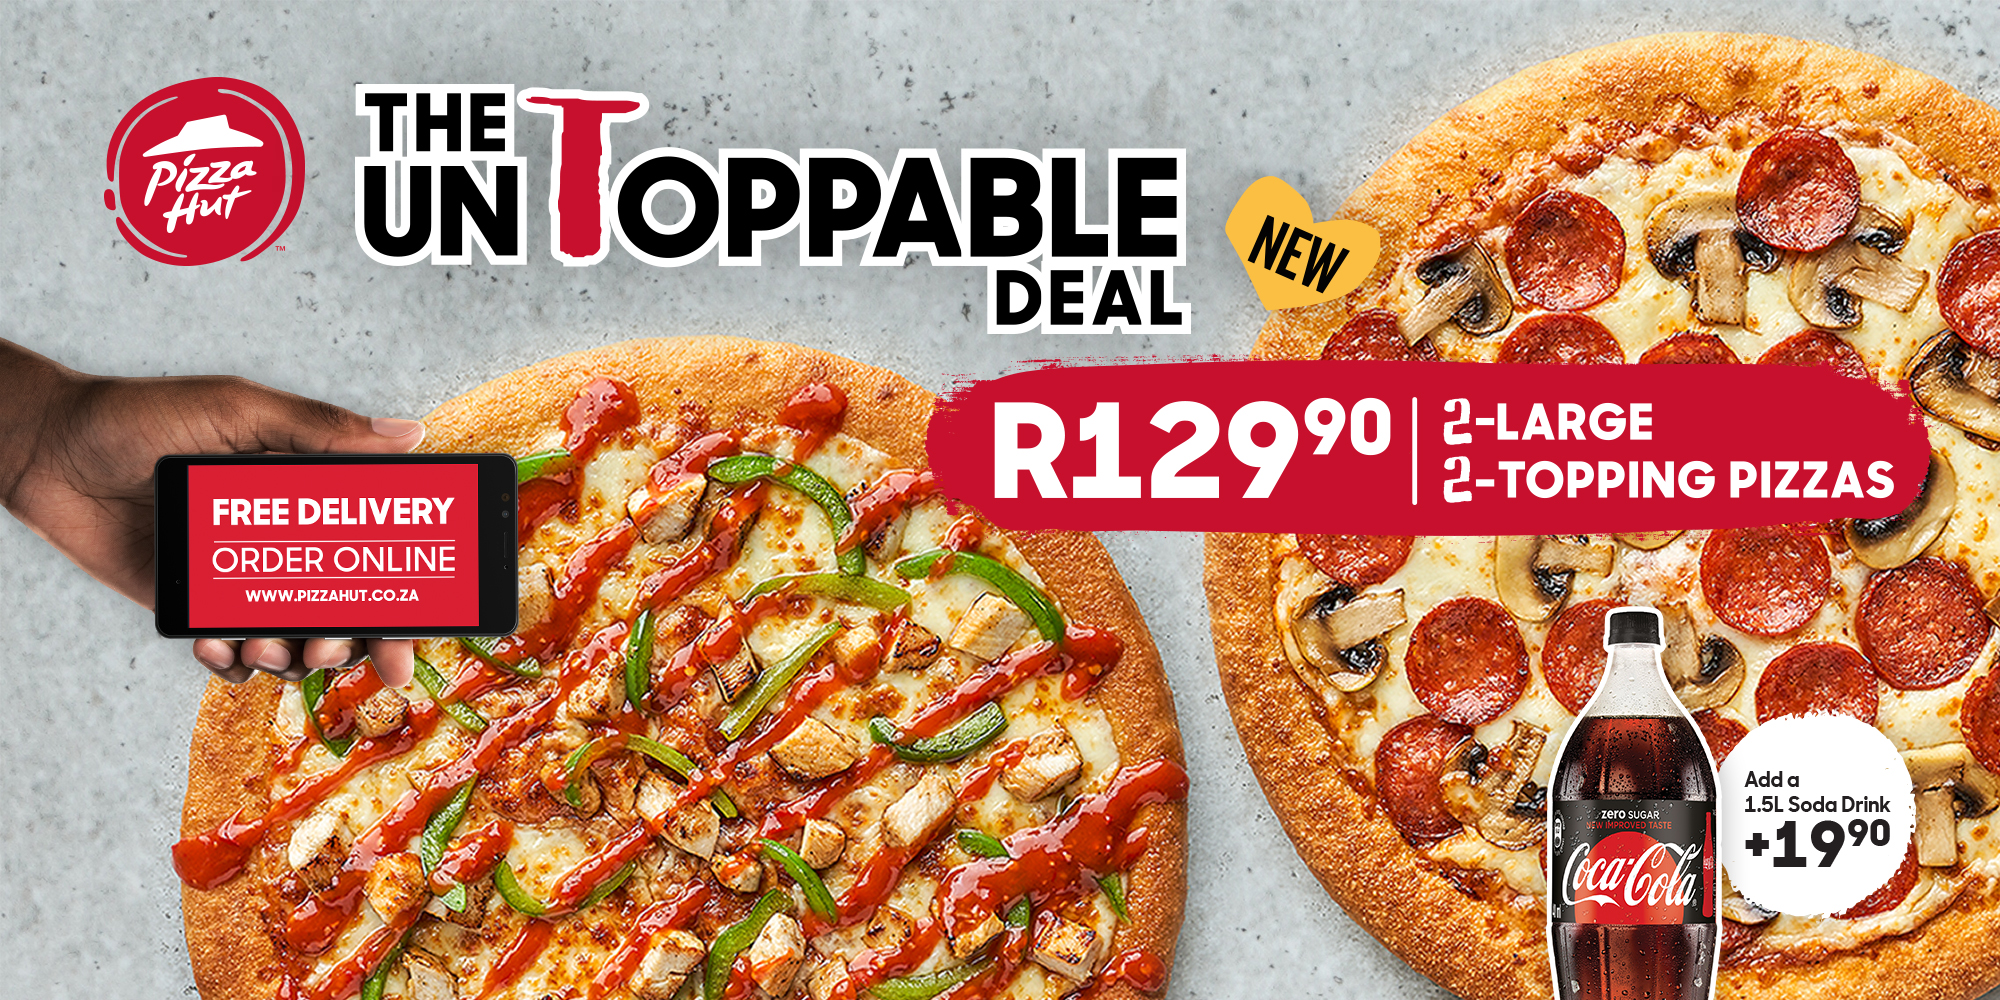 Pizza Bestellen Almelo Pizza Hut South Africa Pizza Delivery Near You Order Online